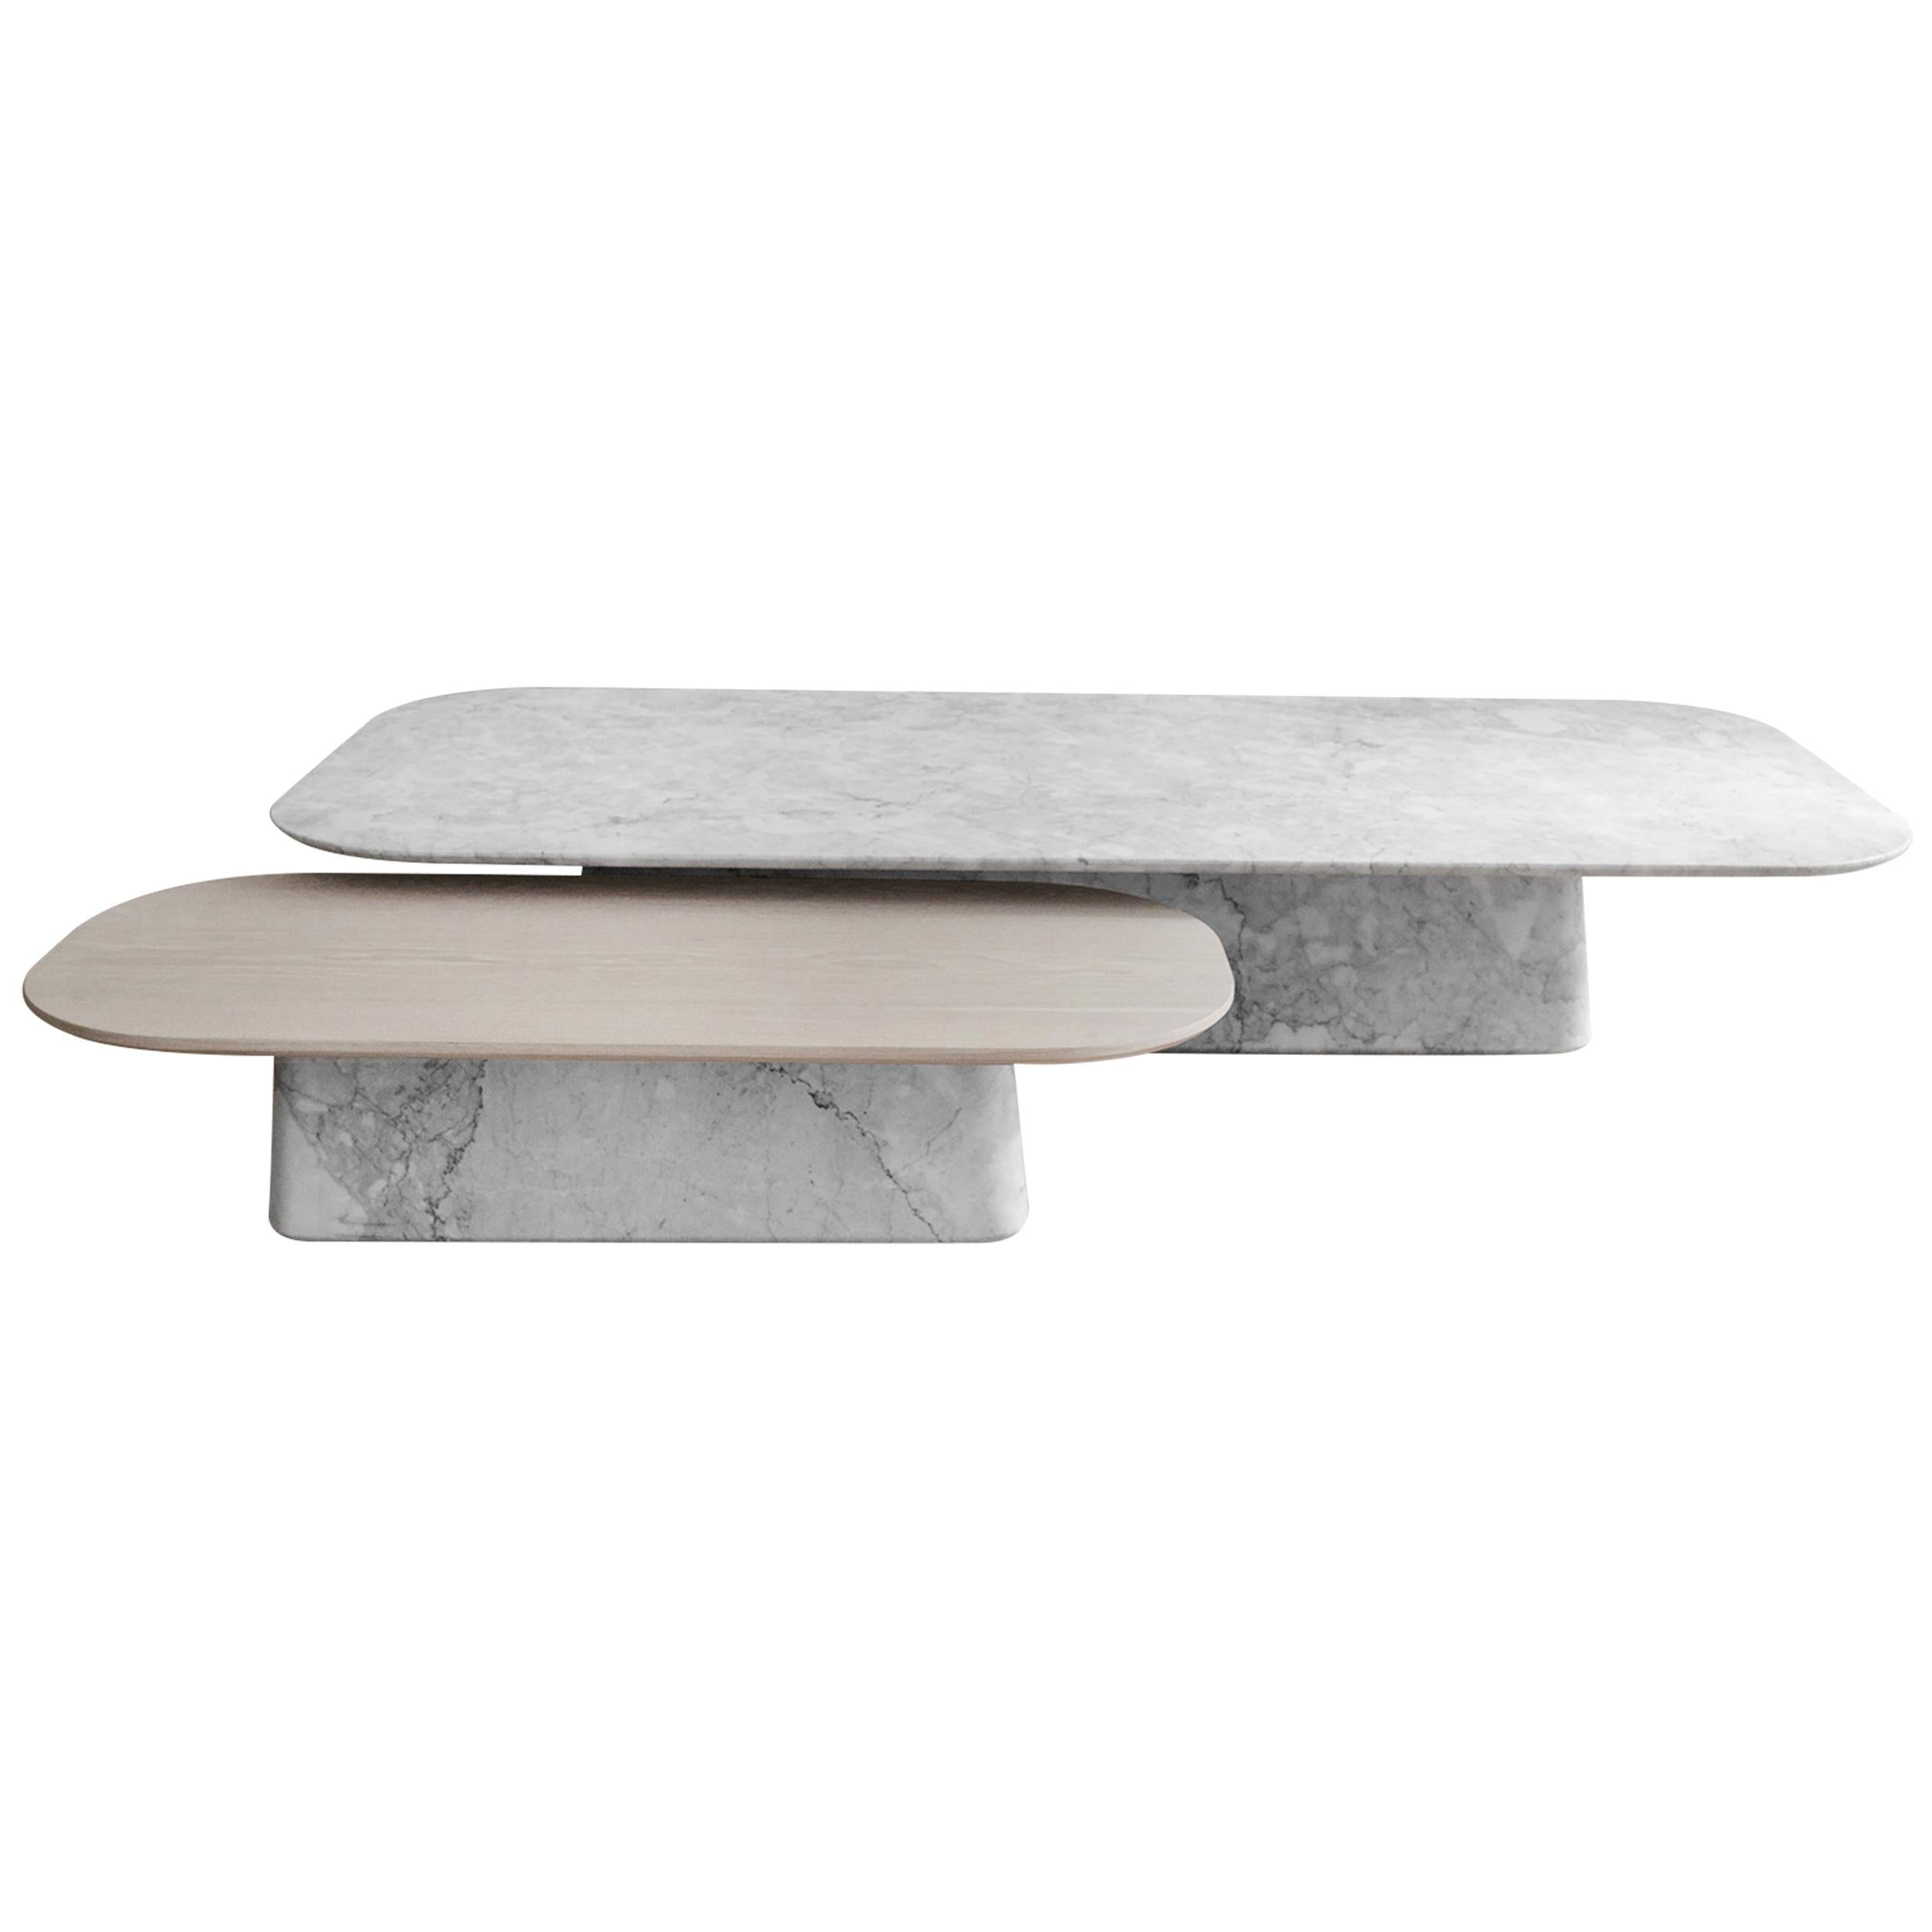 Two Pedestal Coffee Tables in White Marble and White Oak Veneer